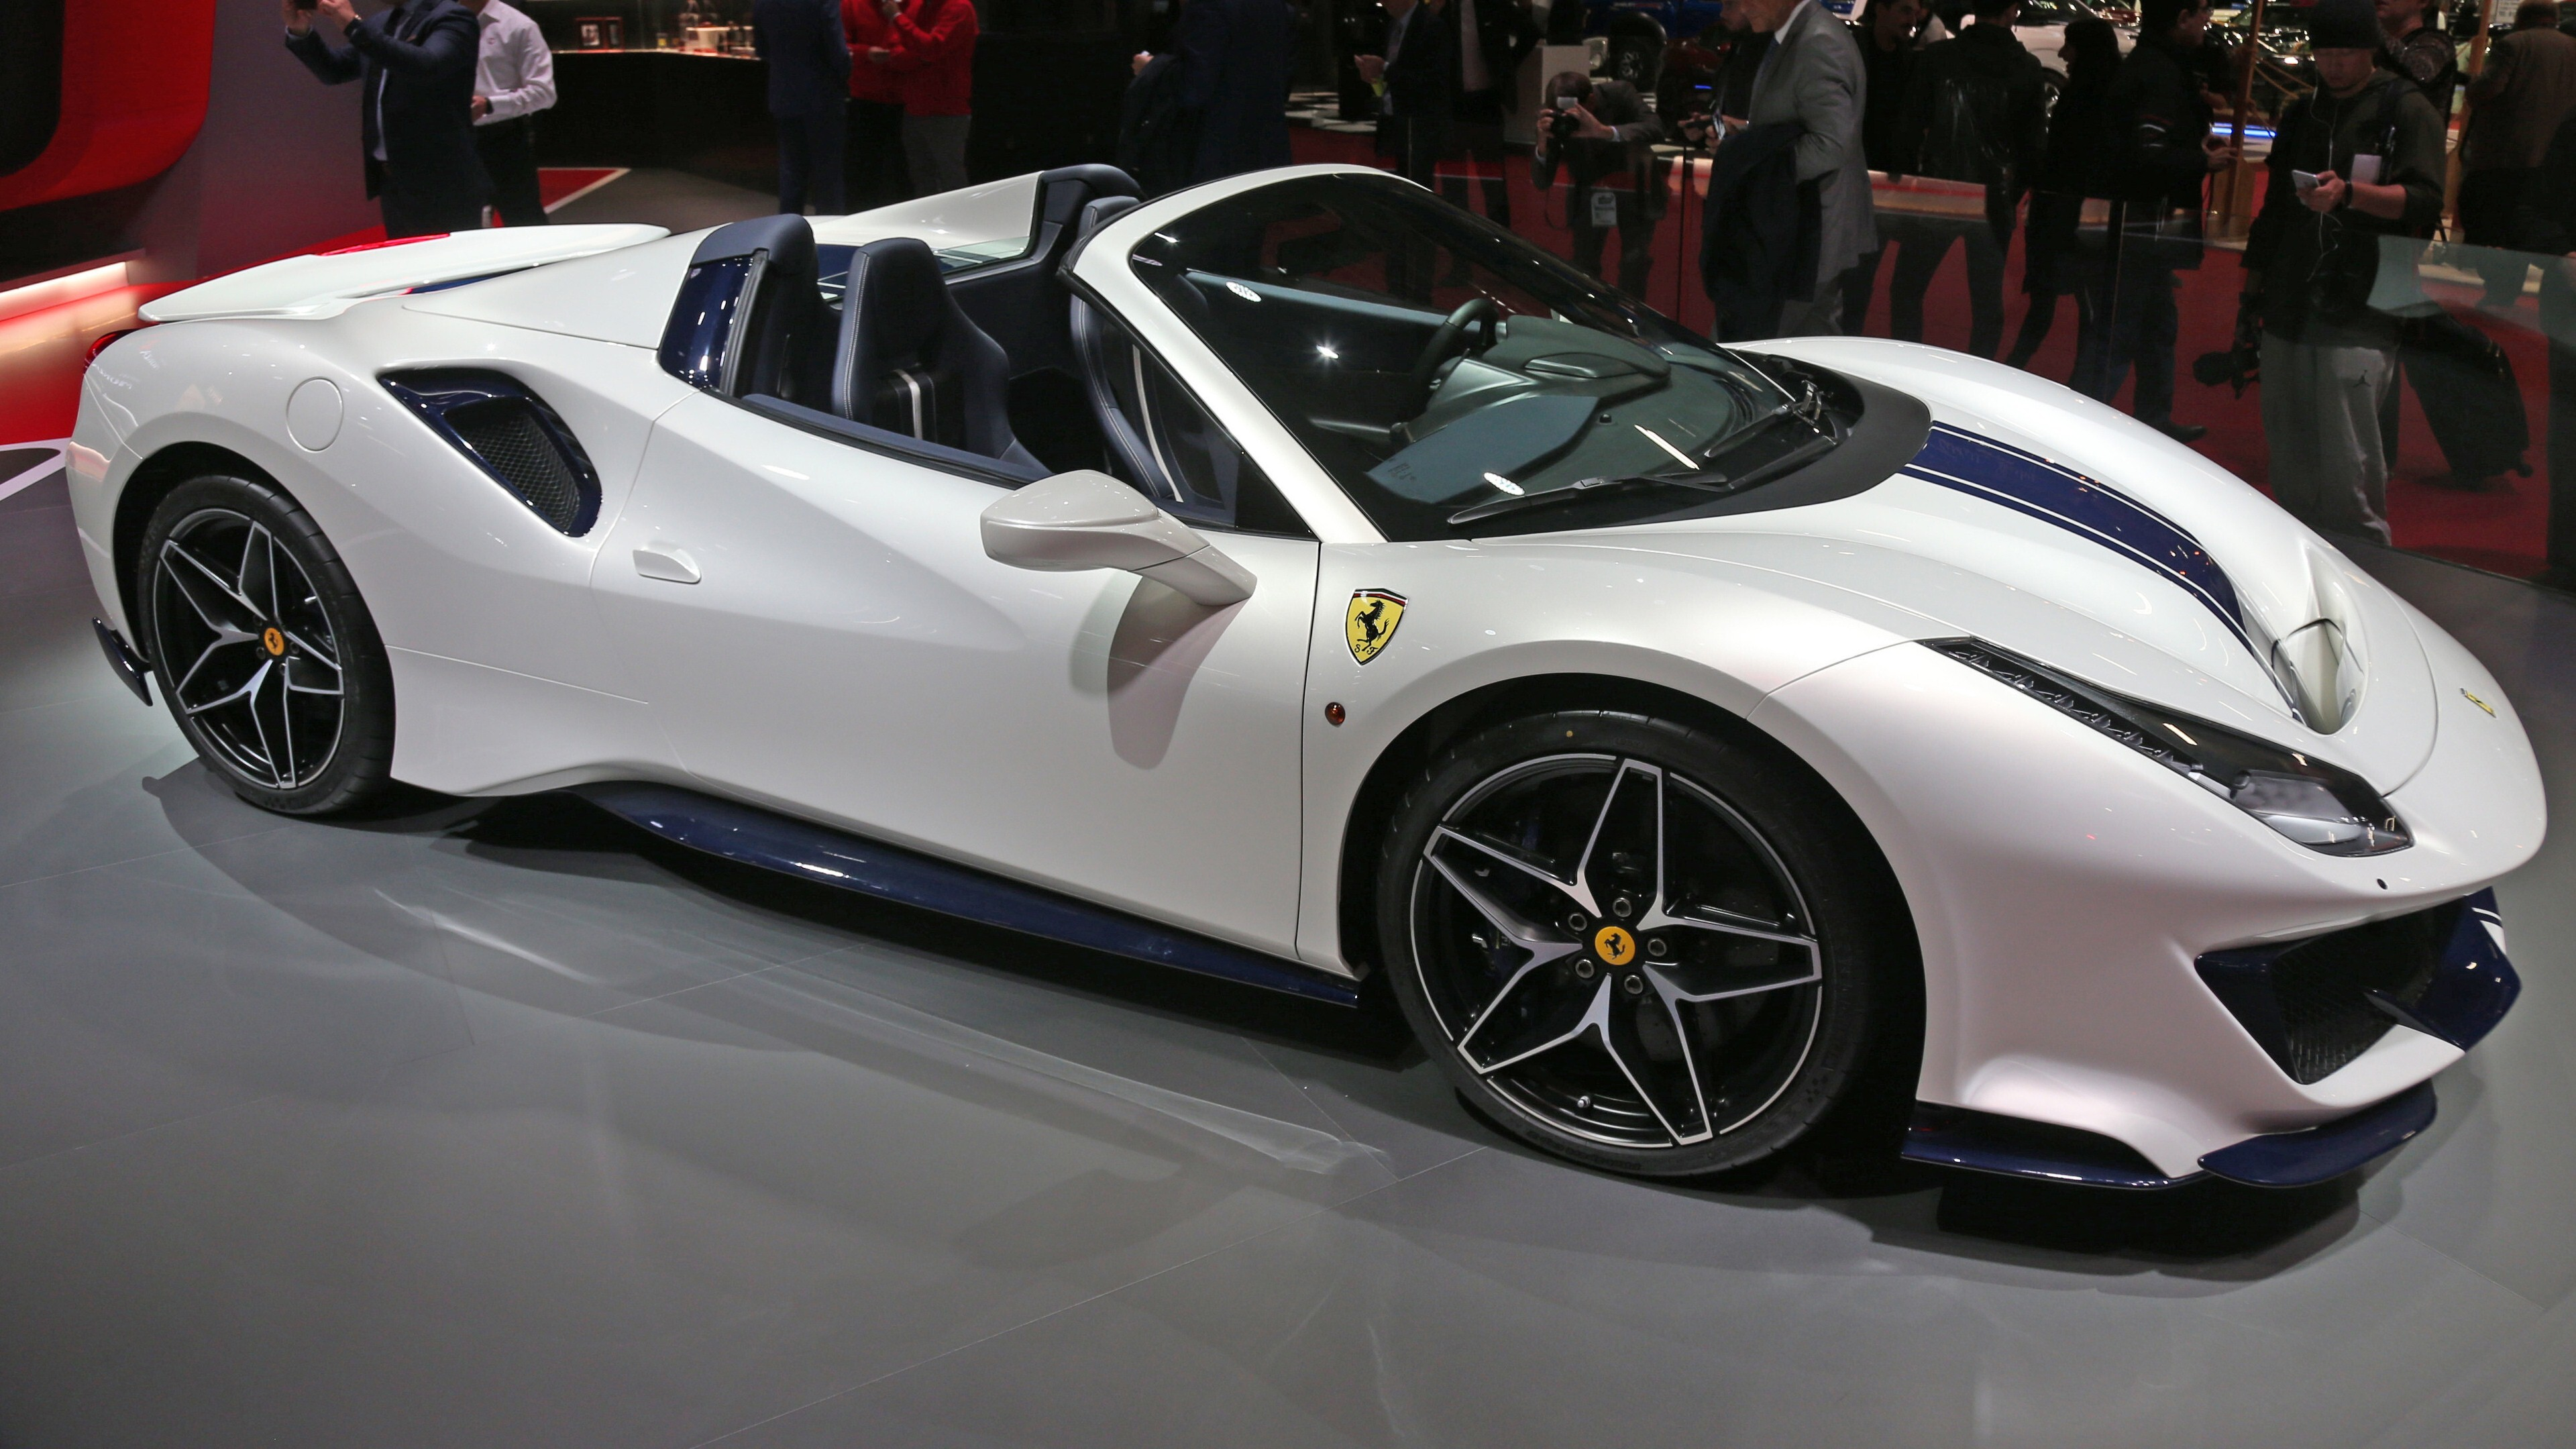 2019 Ferrari 488 Pista Spider 4k Car Hd Wallpapers